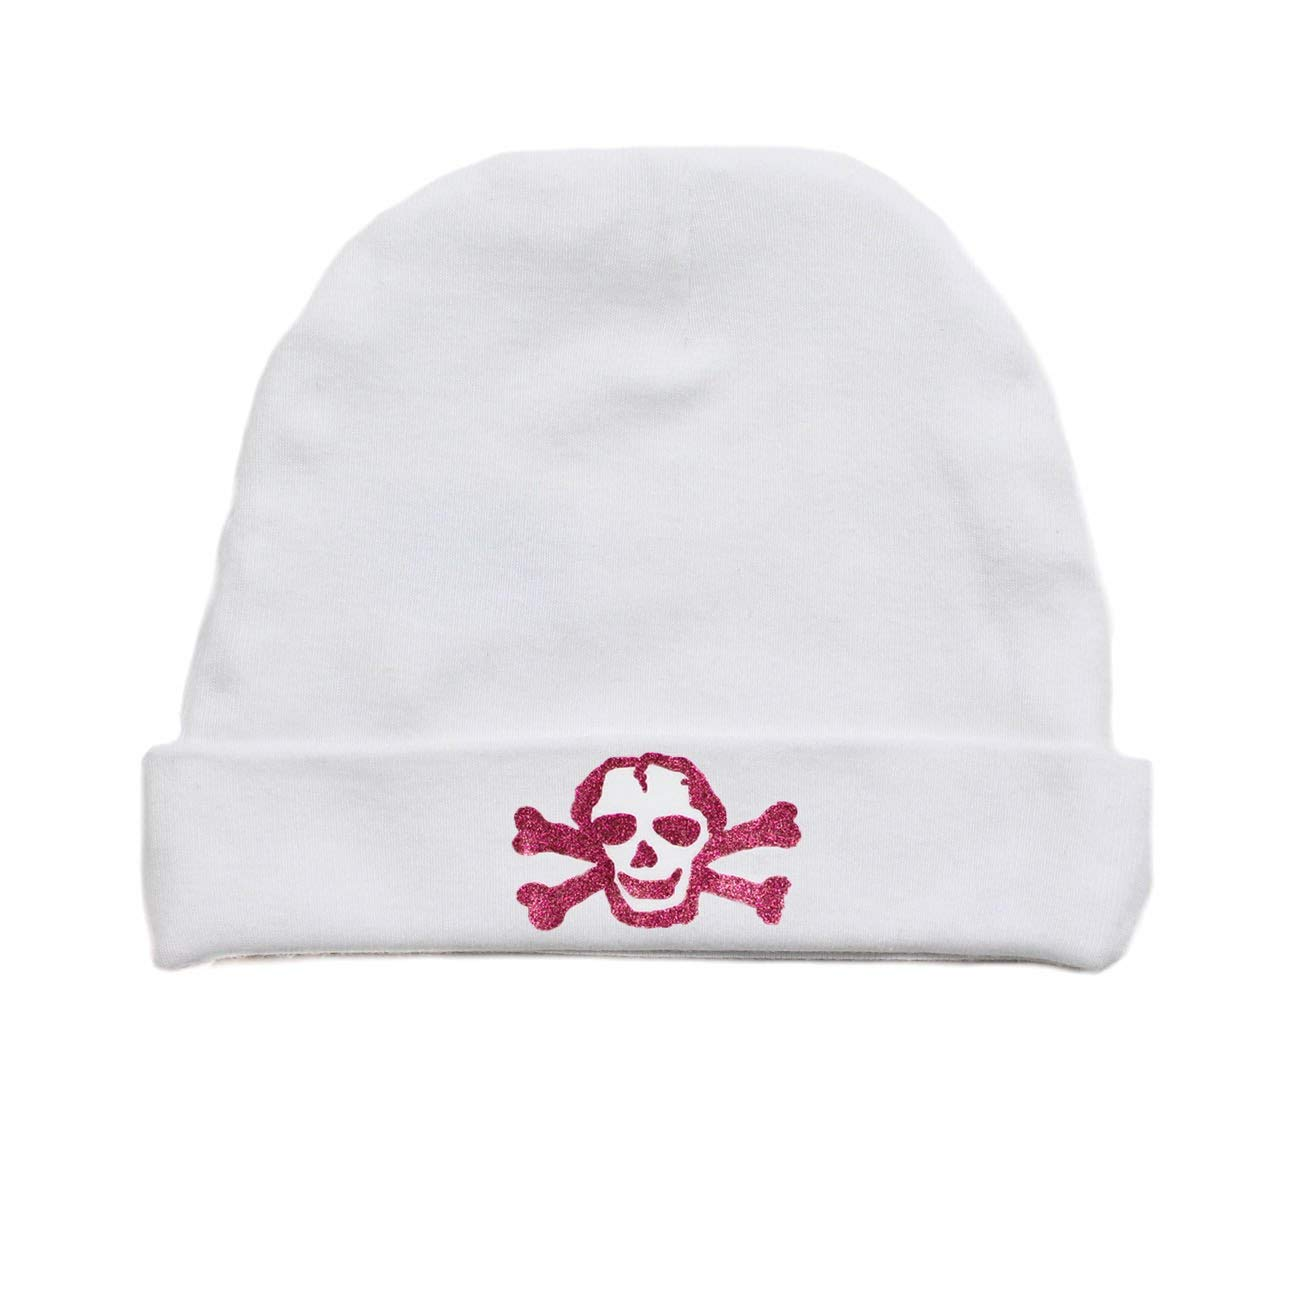 21457922fb525 Get Quotations · Crazy Baby Clothing Glitter Pink Scribble Skull Infant  Baby Beanie Cap